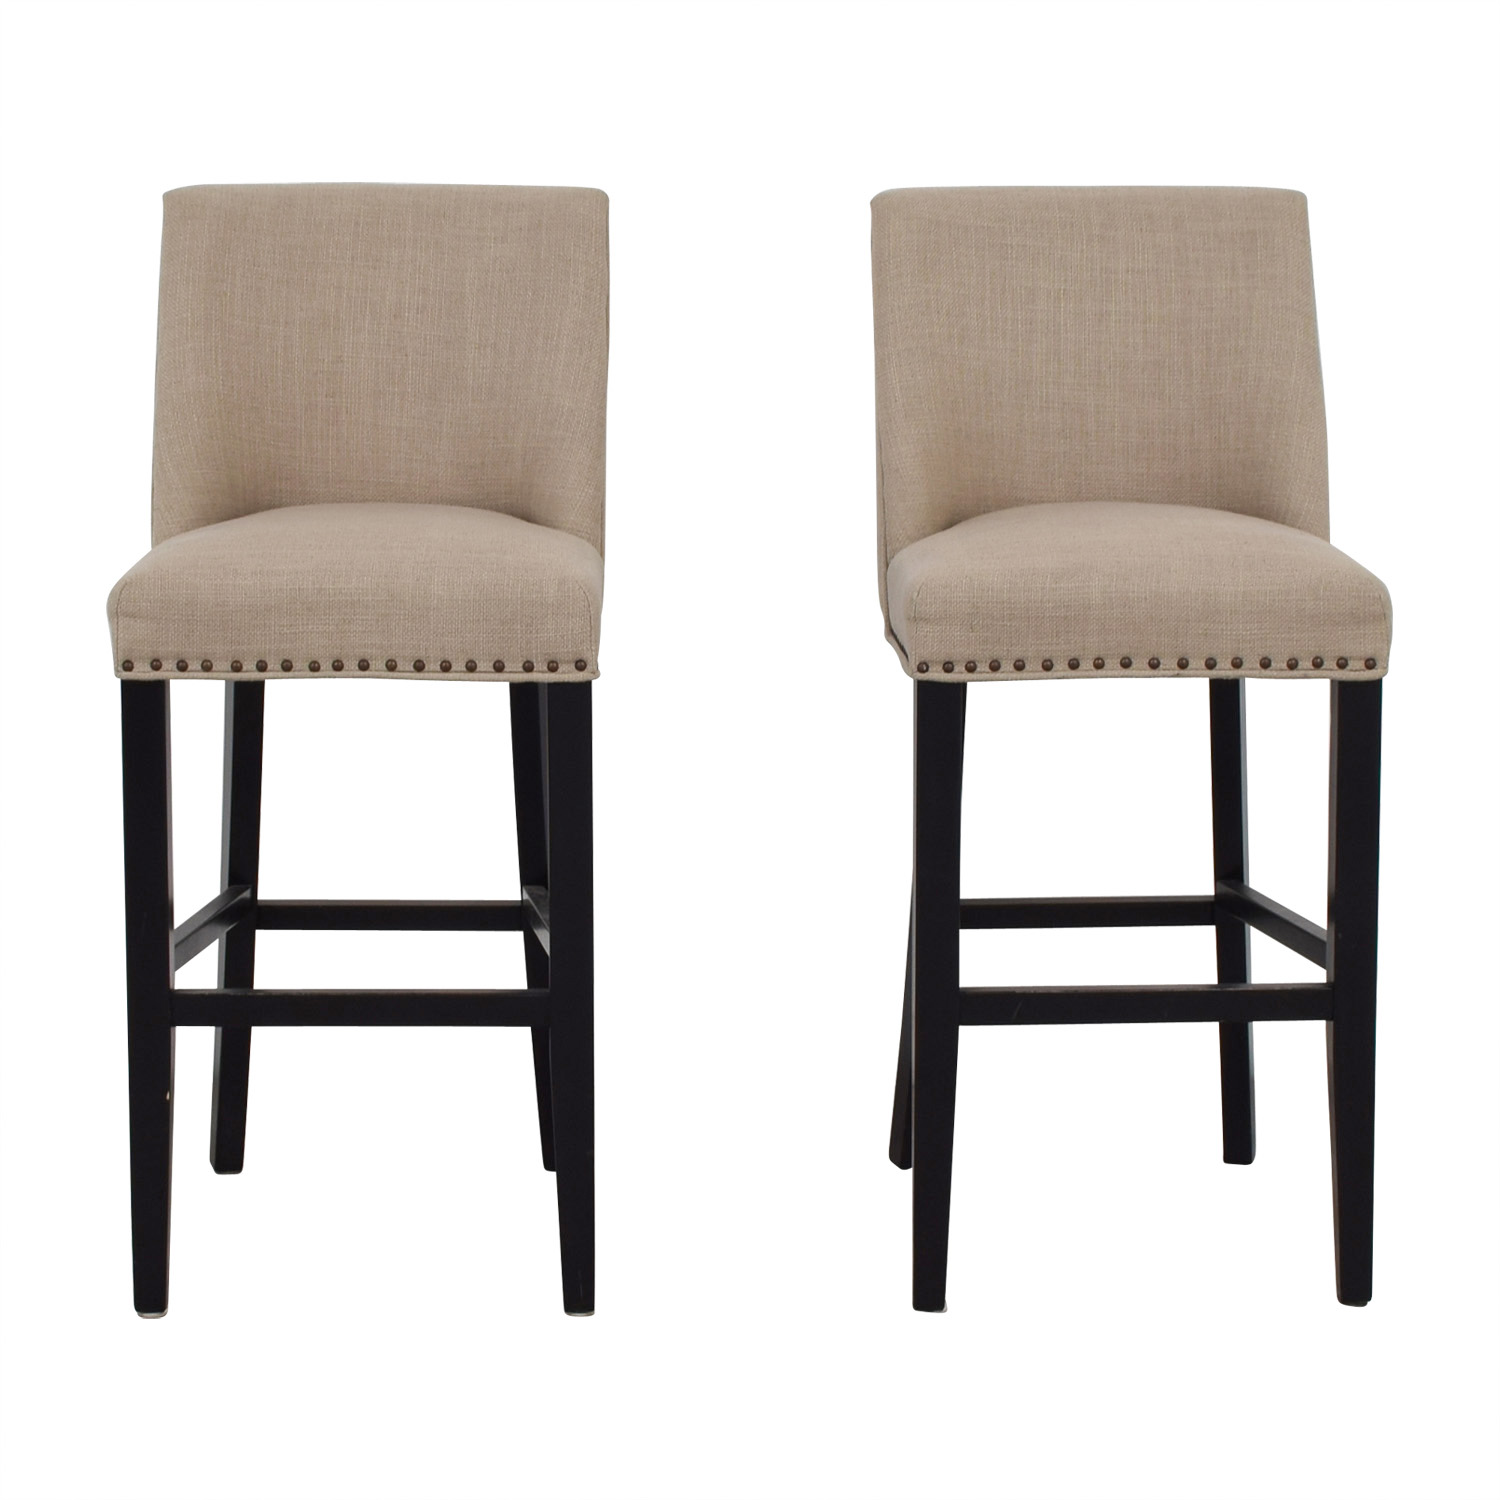 Pier 1 Imports Pier 1 Imports Grey Linen Stools coupon